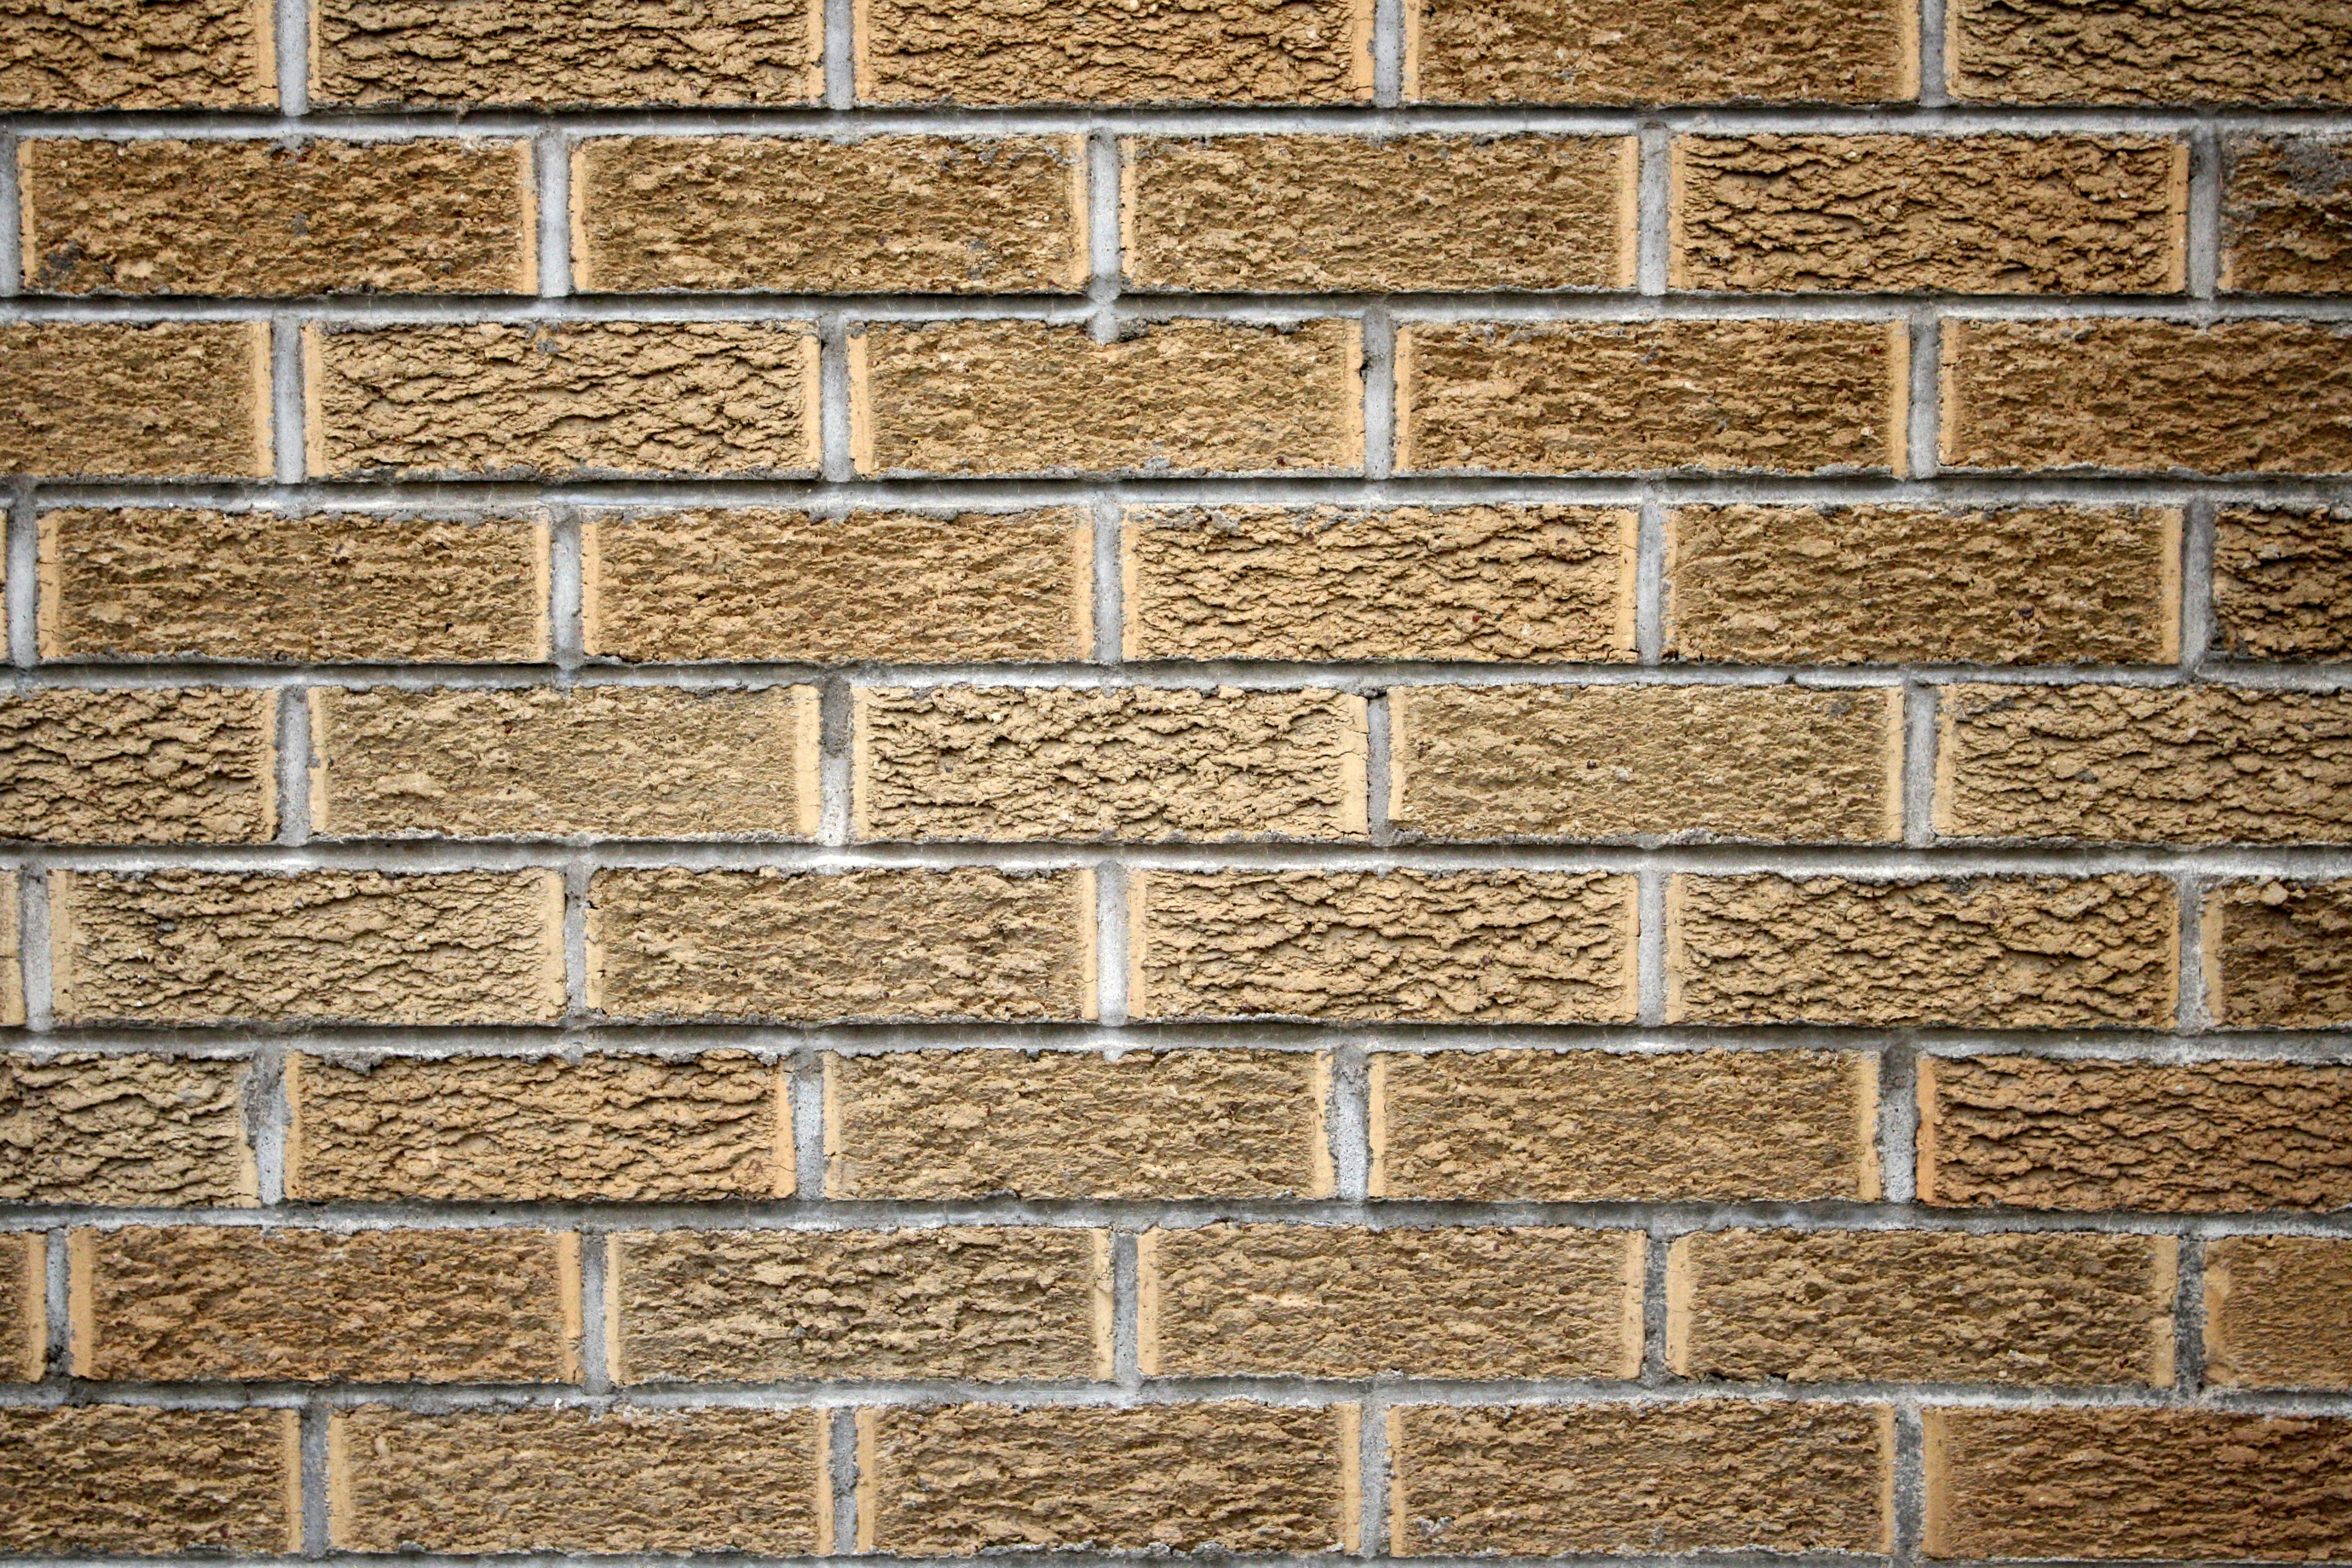 Blonde Brick Wall Texture Picture Free Photograph Photos Public Domain